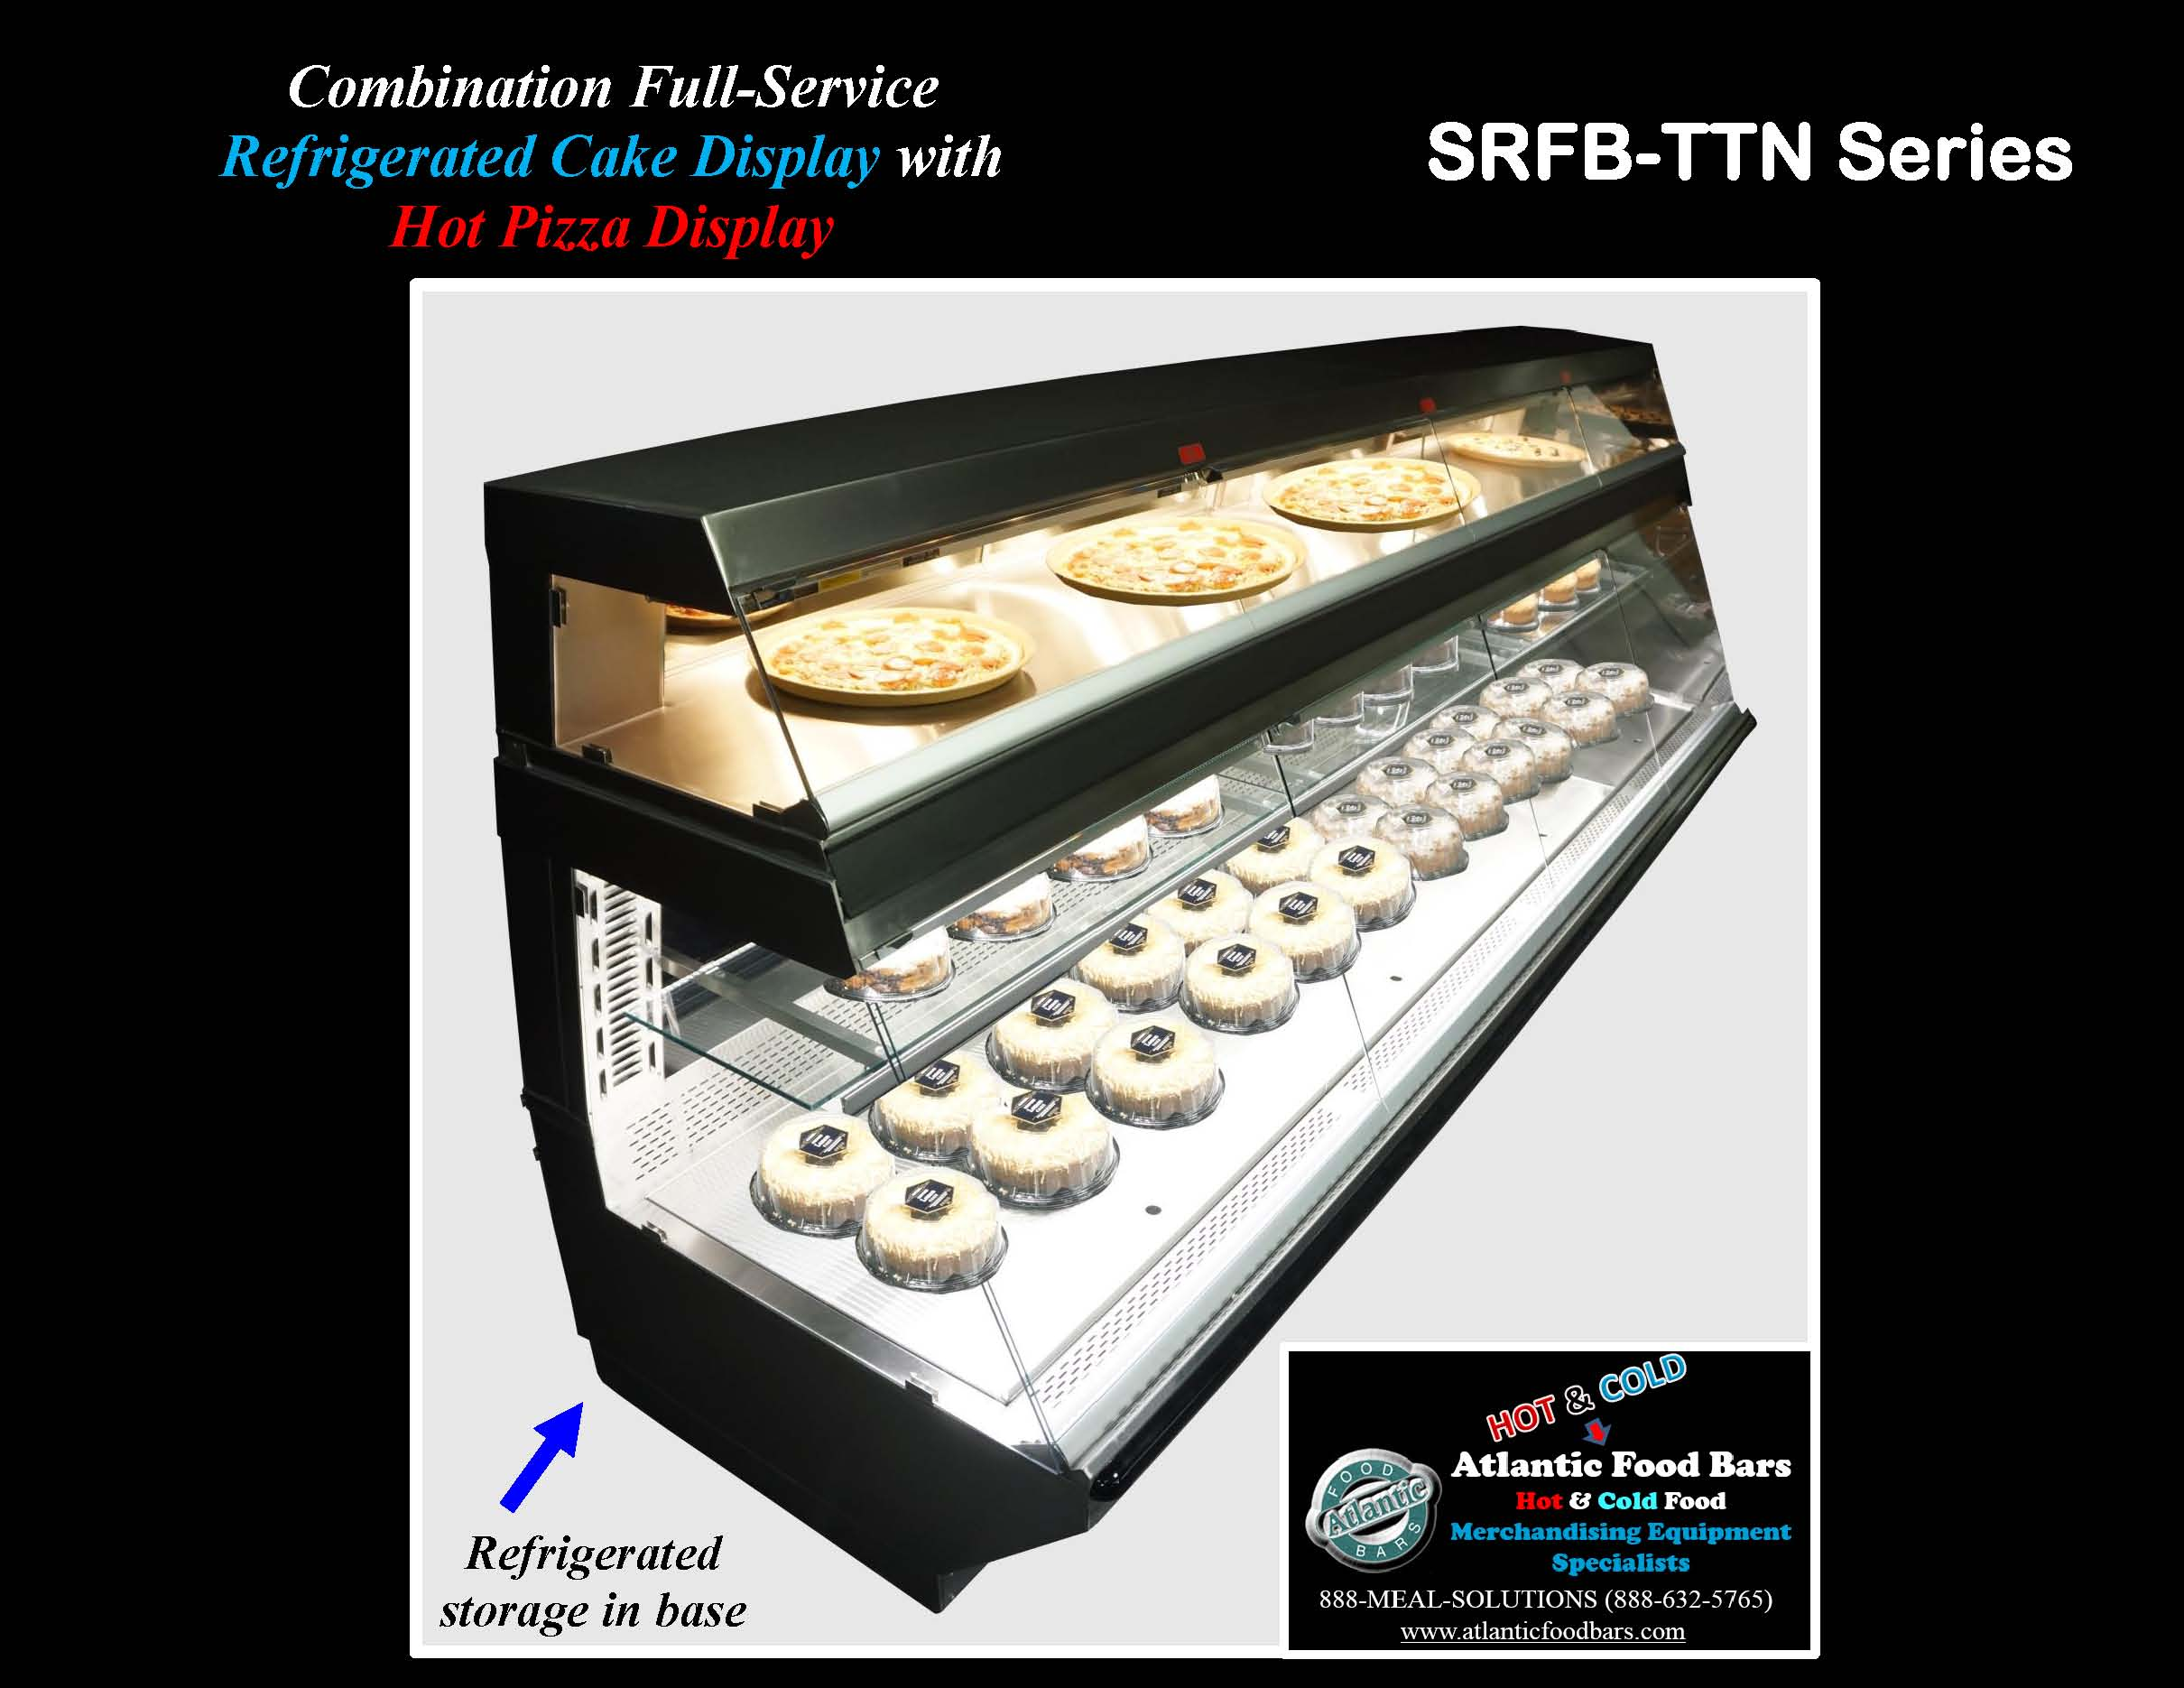 Atlantic Food Bars - Combination Full-Service Refrigerated Cake Display Case with Full Service Hot Pizza Display - SRFB-TTN14440_Page_3